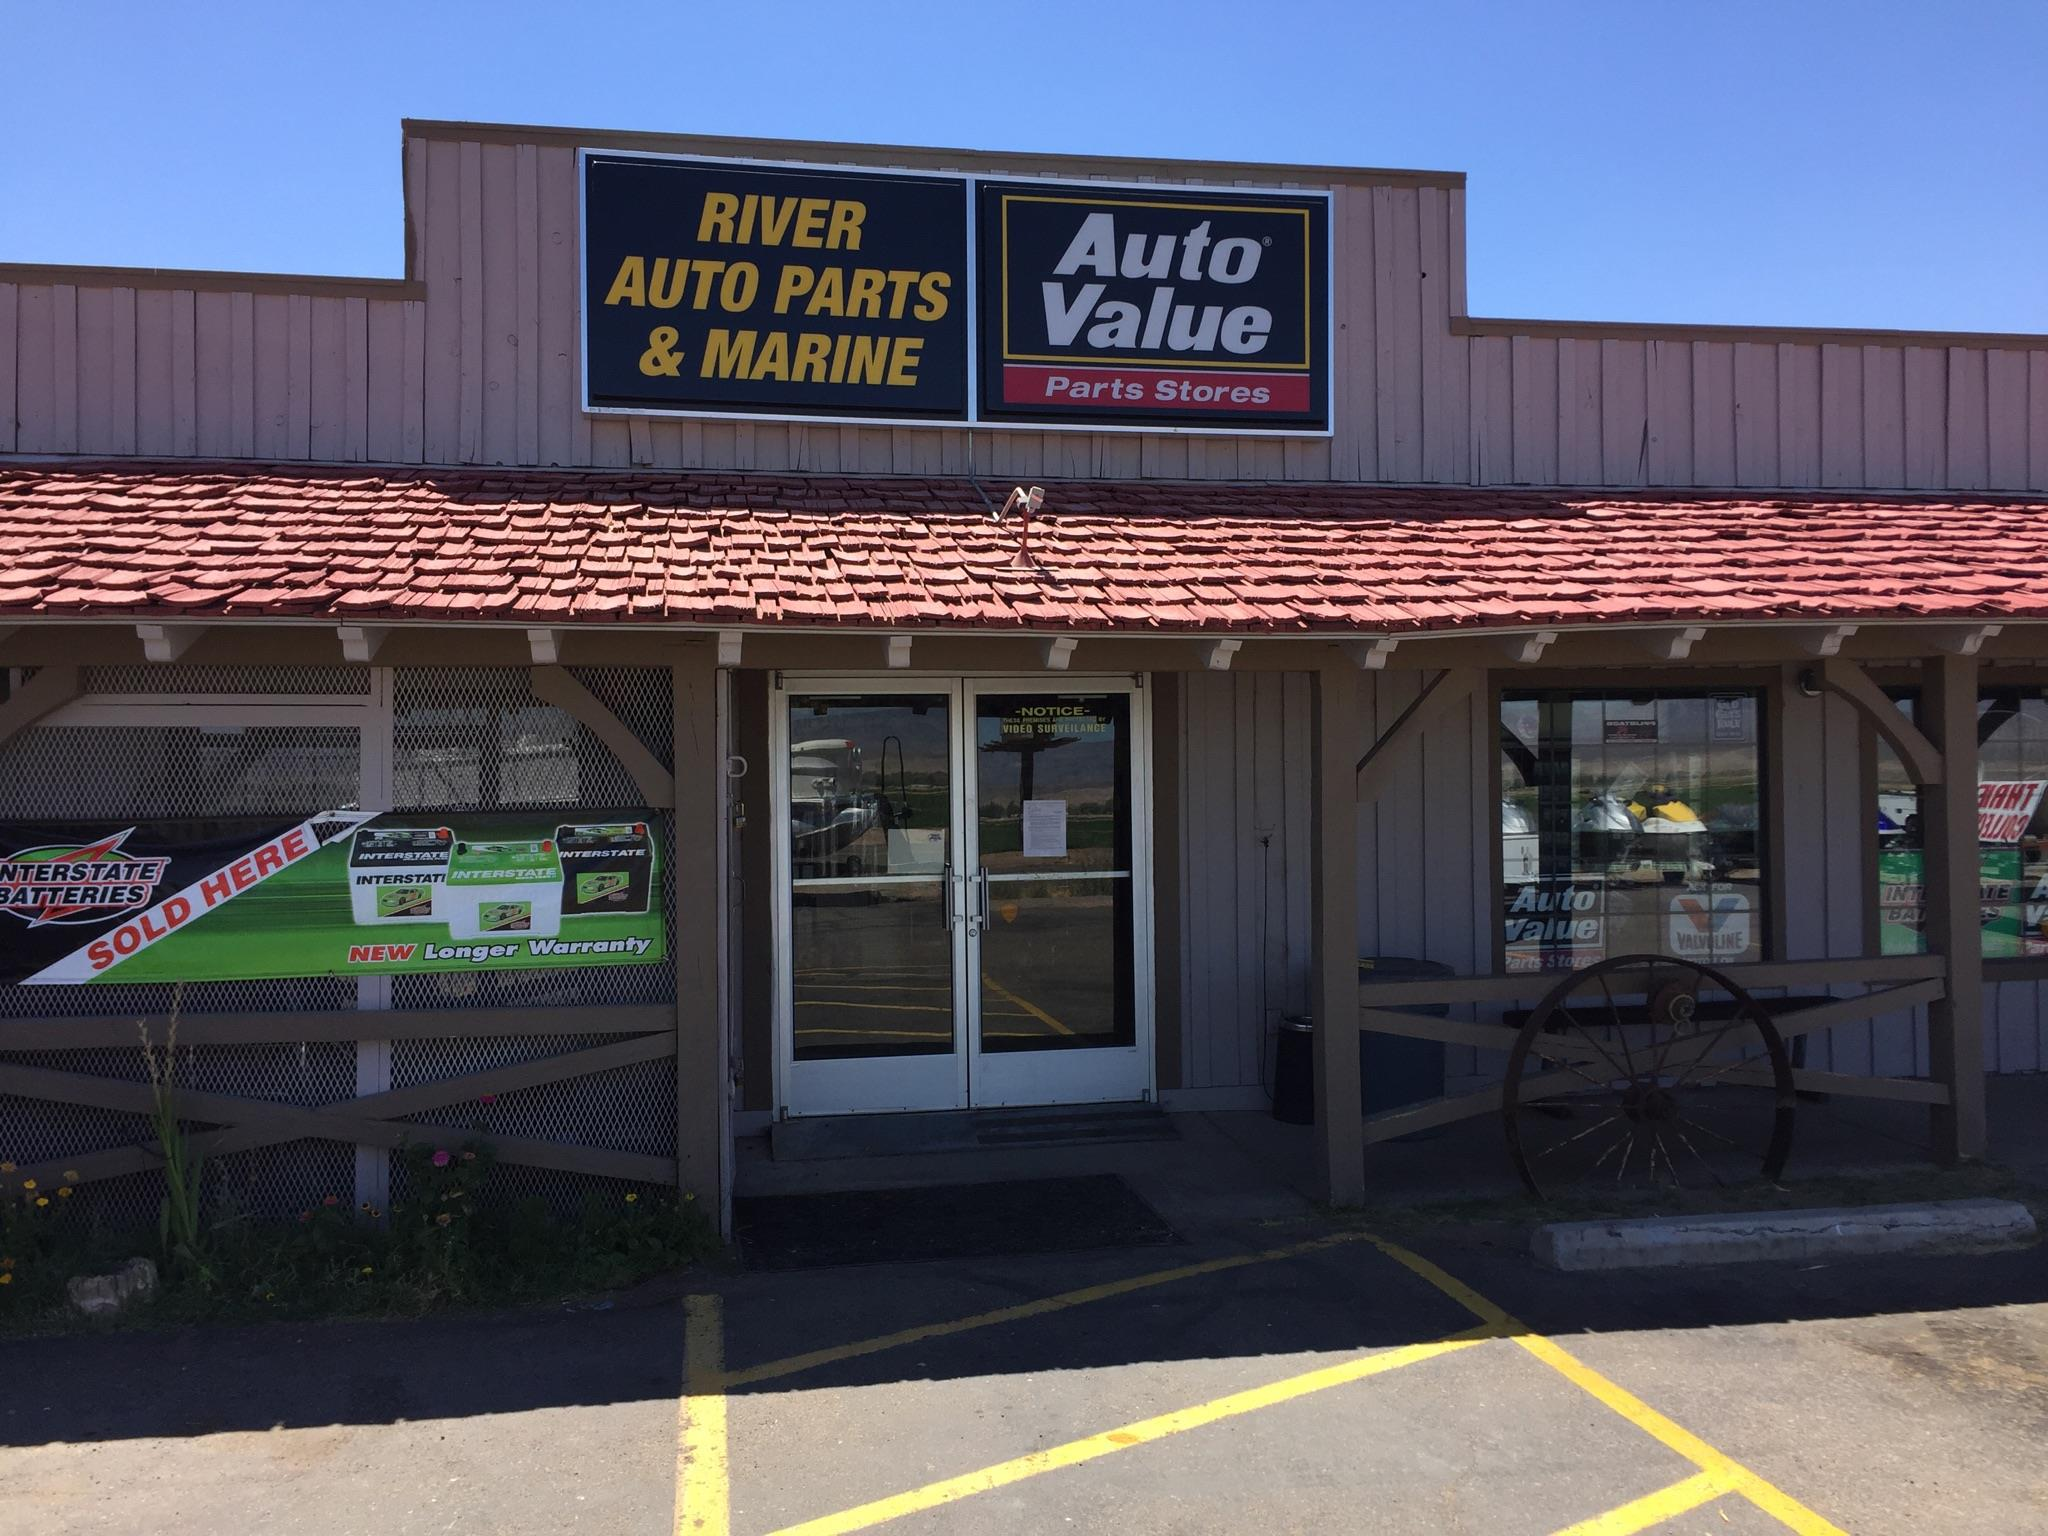 River Auto Parts & Marine logo